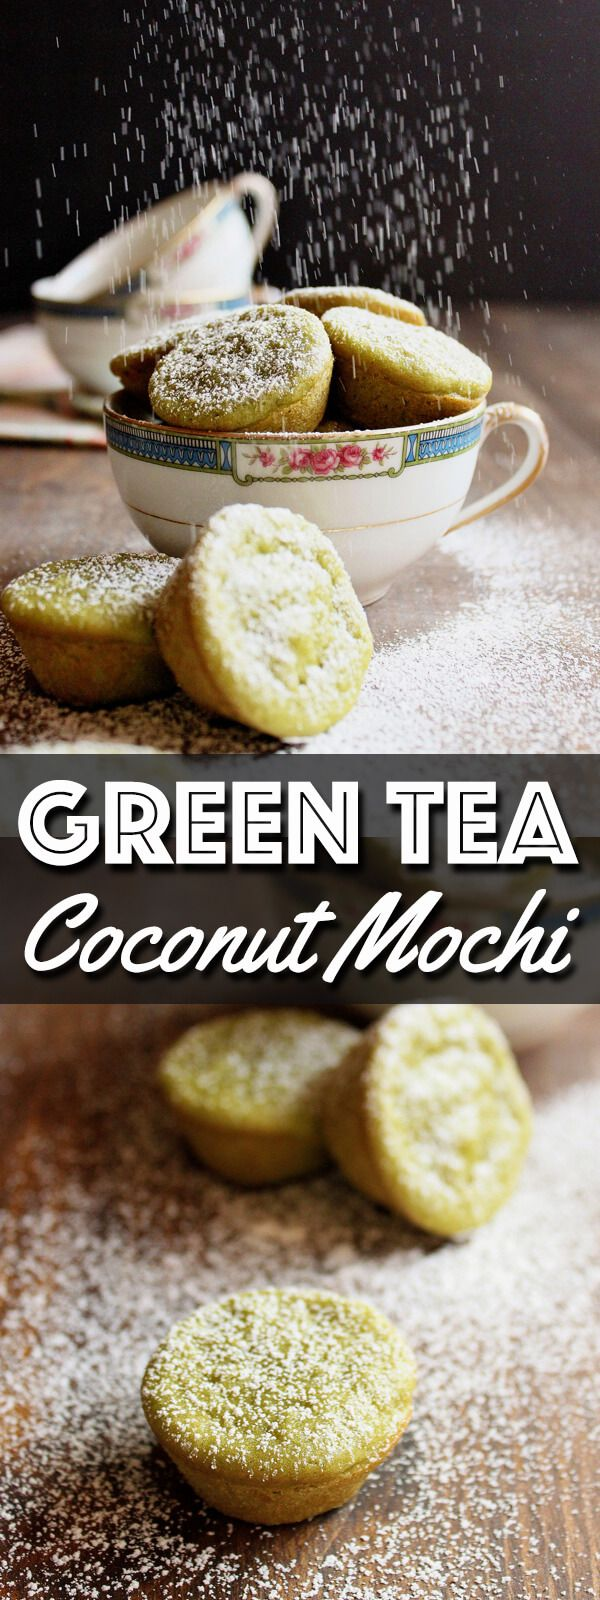 These Green Tea Coconut Mochi are chewy little treats made with coconut milk and sweet rice flour with a touch of delicate Matcha green tea powder. They are gluten free and the green color is completely natural! | wildwildwhisk.com #greentea #matcha #coconutmochi